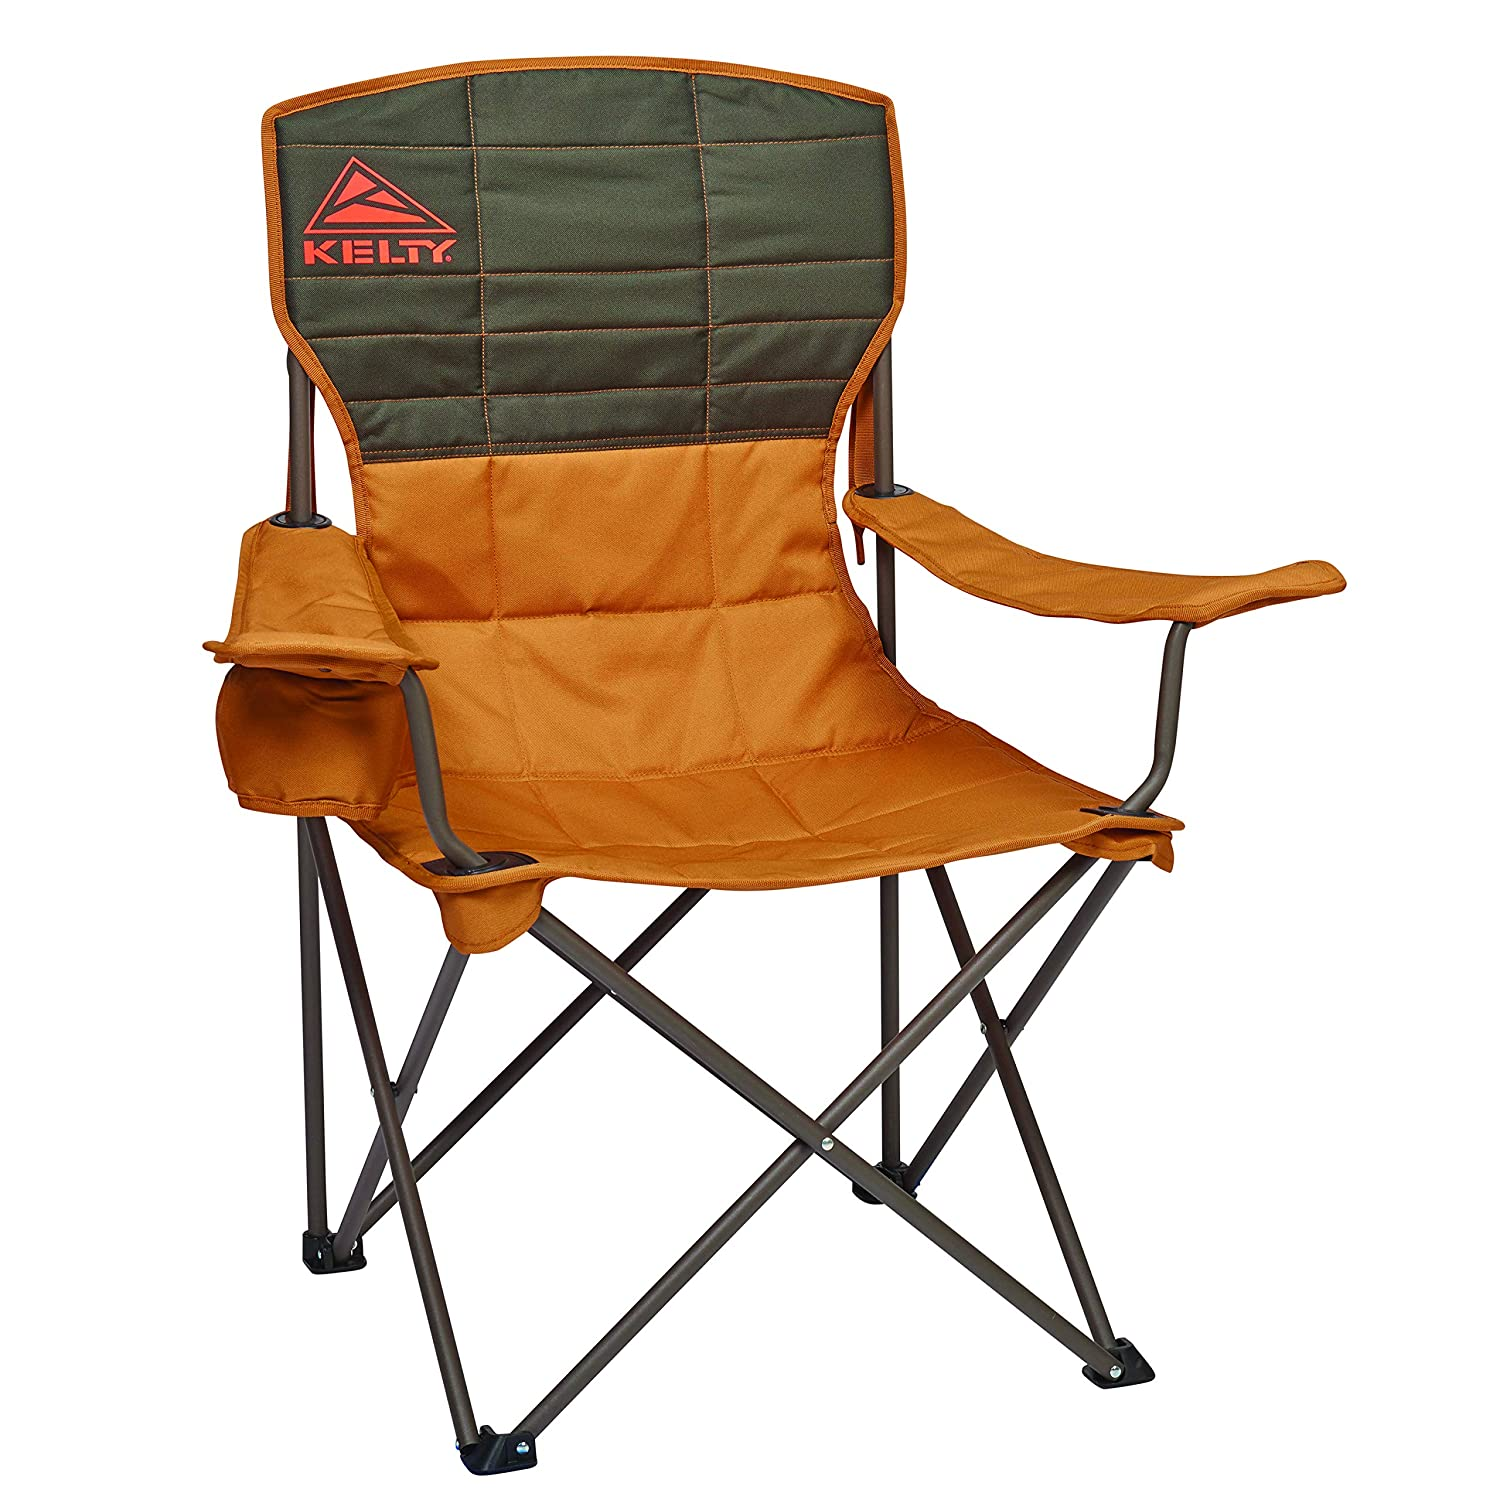 Kelty Essential Camping Chair Folding Camp Chair for Festivals, Camping and Beach Days